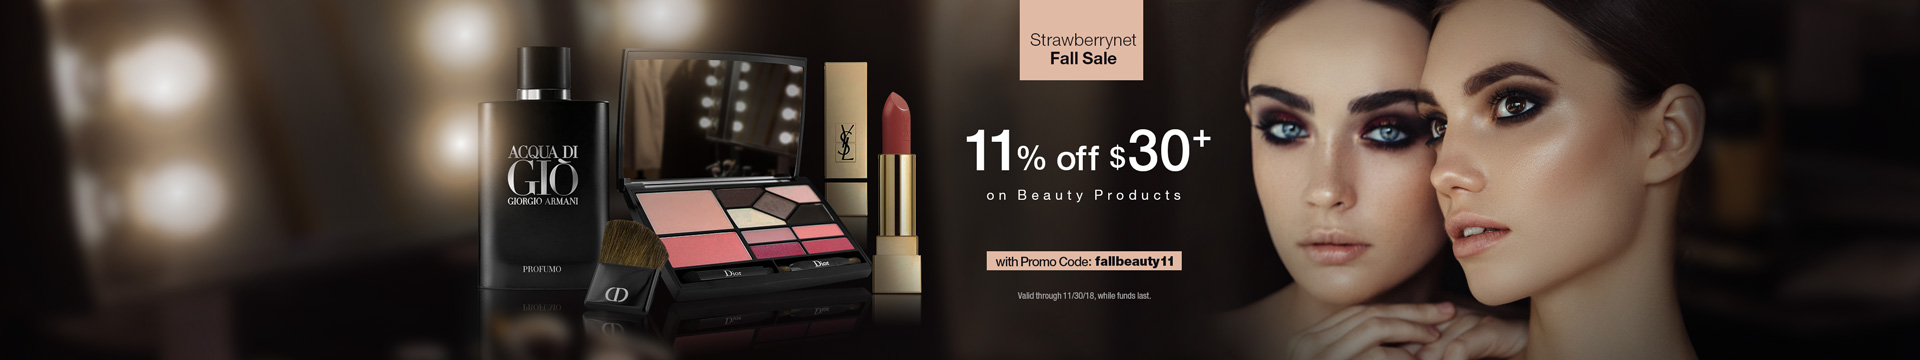 11% off $30+ on Beauty Products